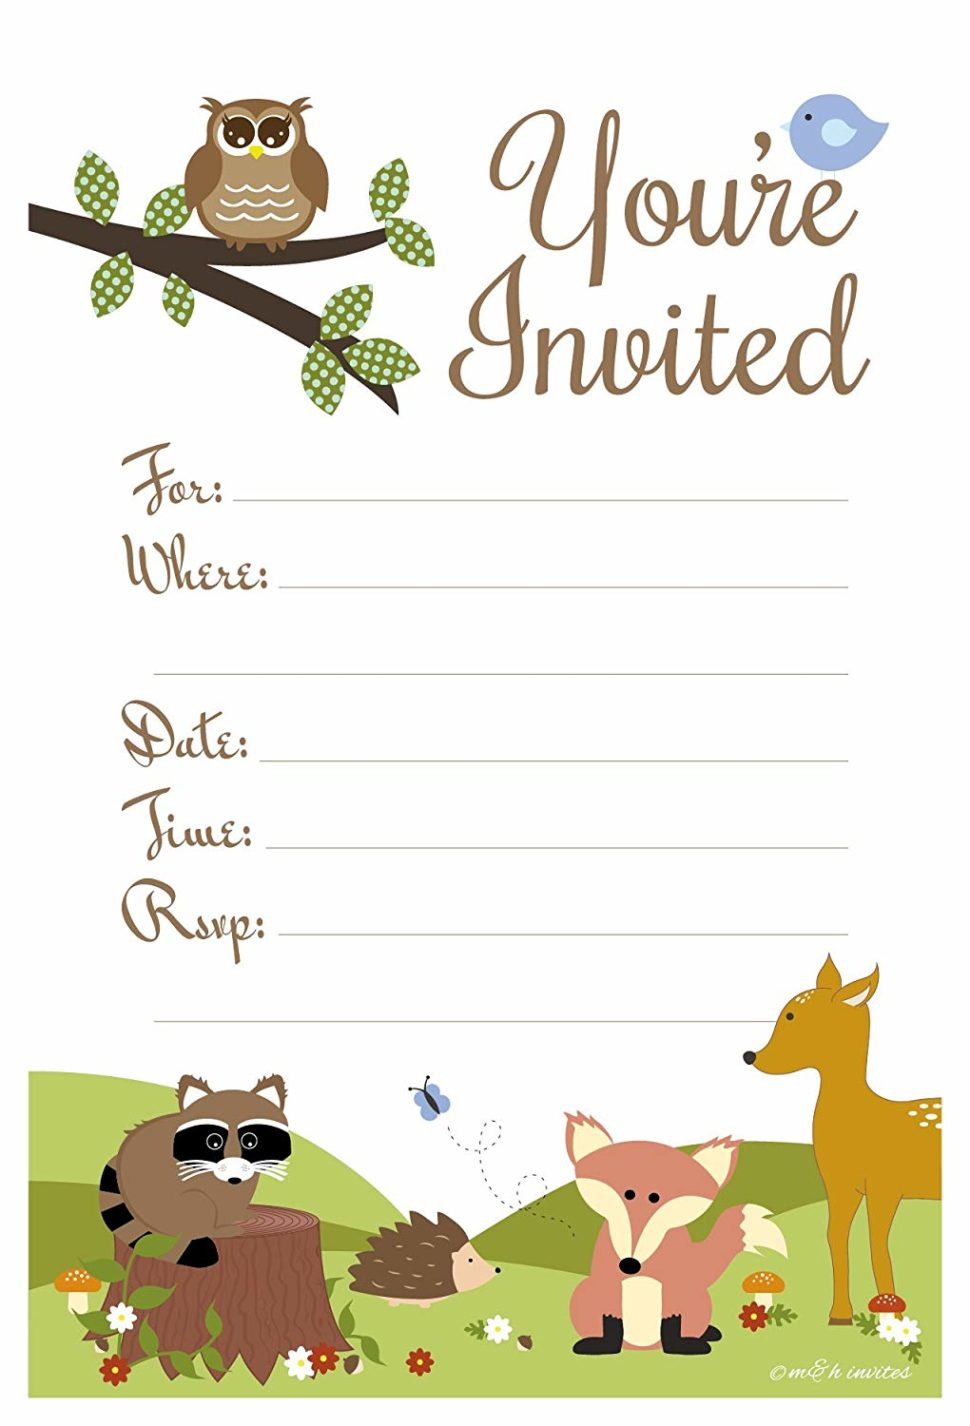 Medium Size of Baby Shower:baby Shower Invitations For Boys Homemade Baby Shower Decorations Baby Shower Ideas Nursery Themes For Girls Baby Shower Invitations For Girls Baby Shower Decorations For Boys Baby Girl Themed Showers Baby Girl Themes